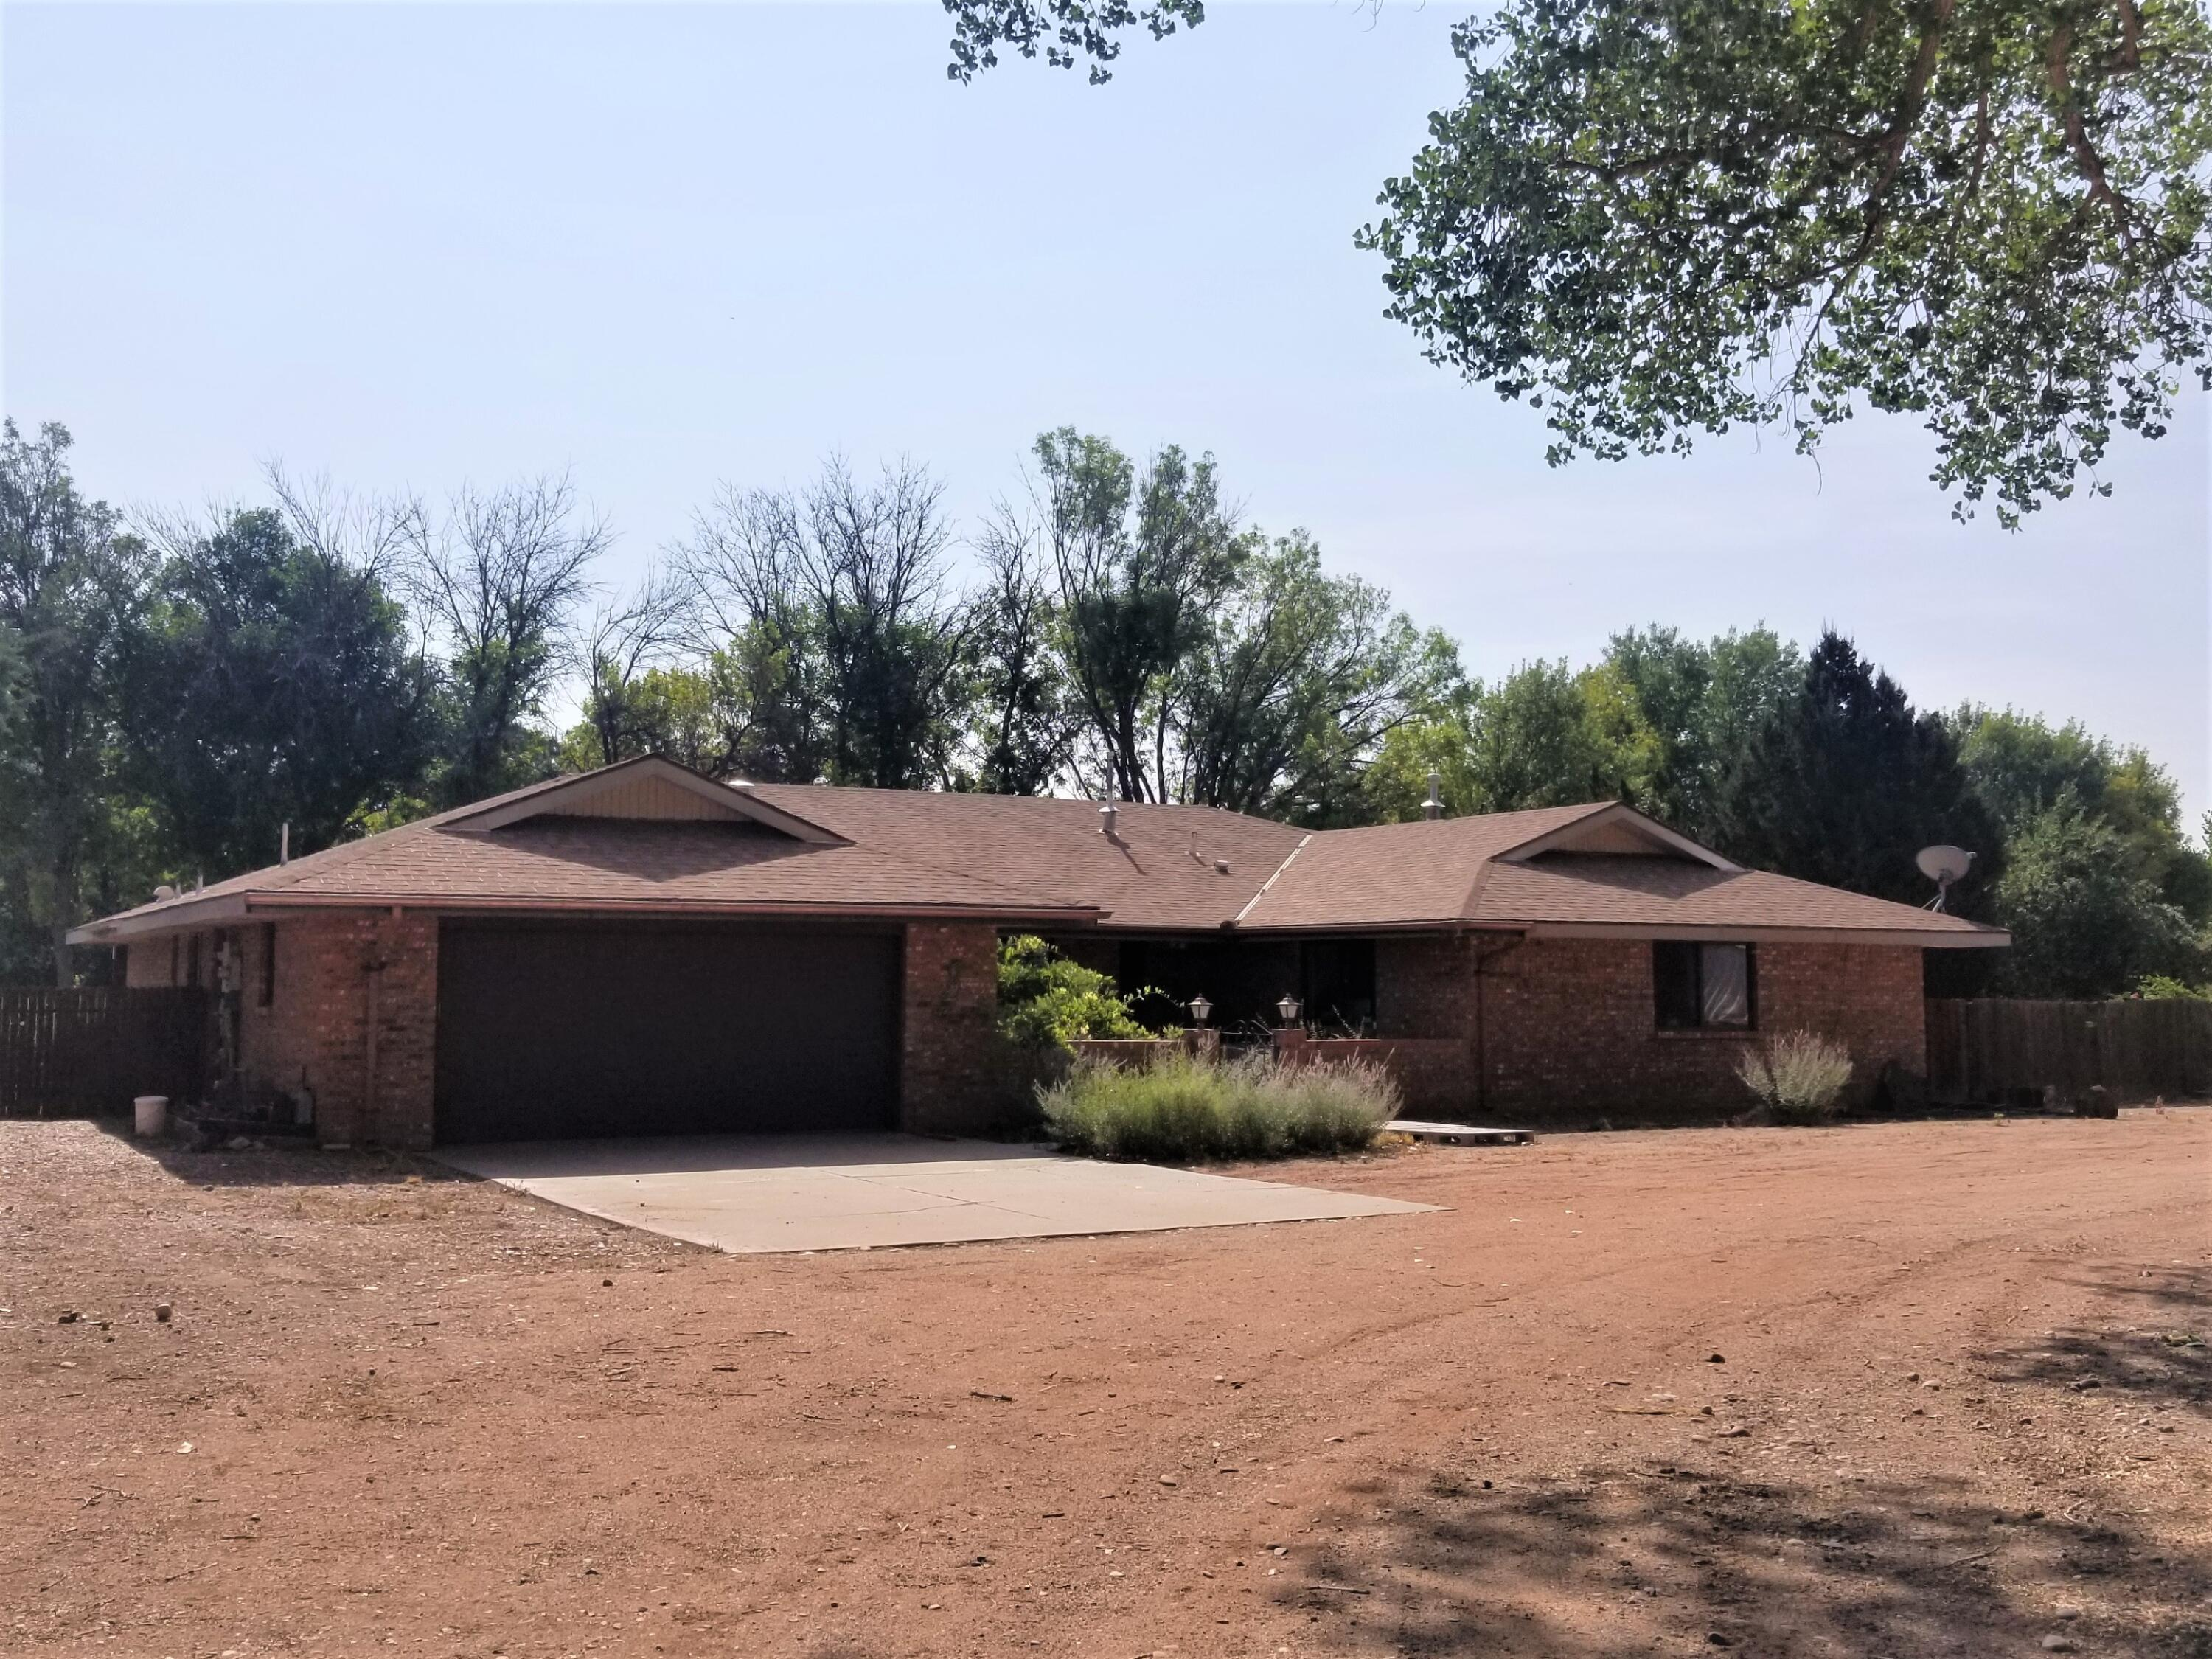 Stunning property nestled in the heart of beautiful Bosque Farms. This 2840 sf all brick home. Sits on almost 12 acres. Five out buildings. Great for horse training, breeding or any sort of equestrian operation. Highly yielding alfalfa field, or you could convert it to a commercial grow operation. The field is irrigated via a concrete ditch with MRGCD irrigation rights. Recently laser leveled and can be reseeded. There is a 40 x 60 insulated steel building that holds 9-12 cars or 3 large motorhomes. Additional 2 car garage, equipment and hay sheds. Just a short drive to Albuquerque downtown and airport. Golf, tennis, skiing, sports venues and casinos close by. Short drive to mountains for camping, hiking and fishing. Come see the possibilities this beautiful secluded property has to offer.